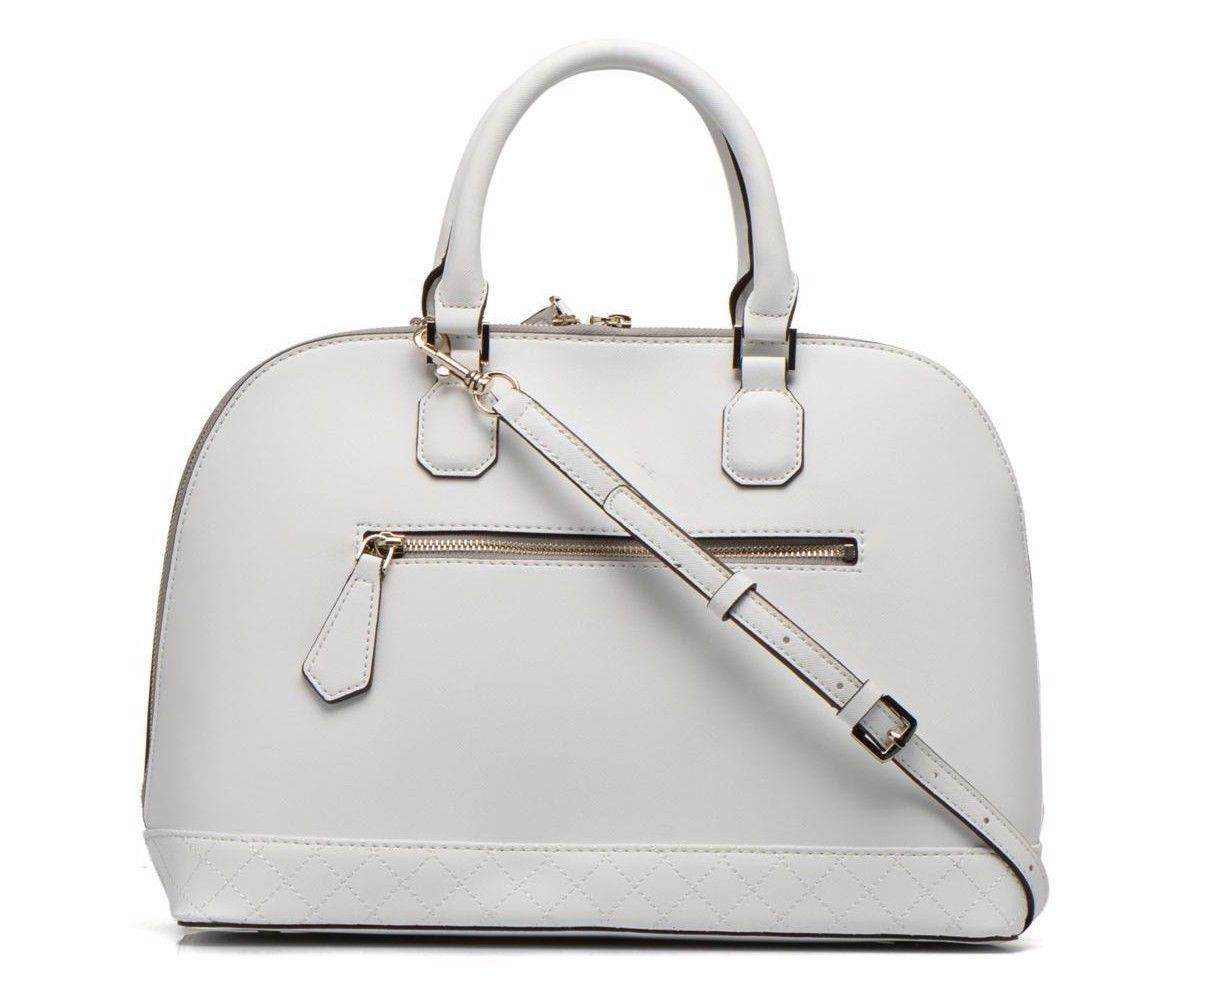 NWT - GUESS  KORRY PERFORATED DOME  White LEATHER SATCHEL - VG617206  99.95 75e081cba0cc1